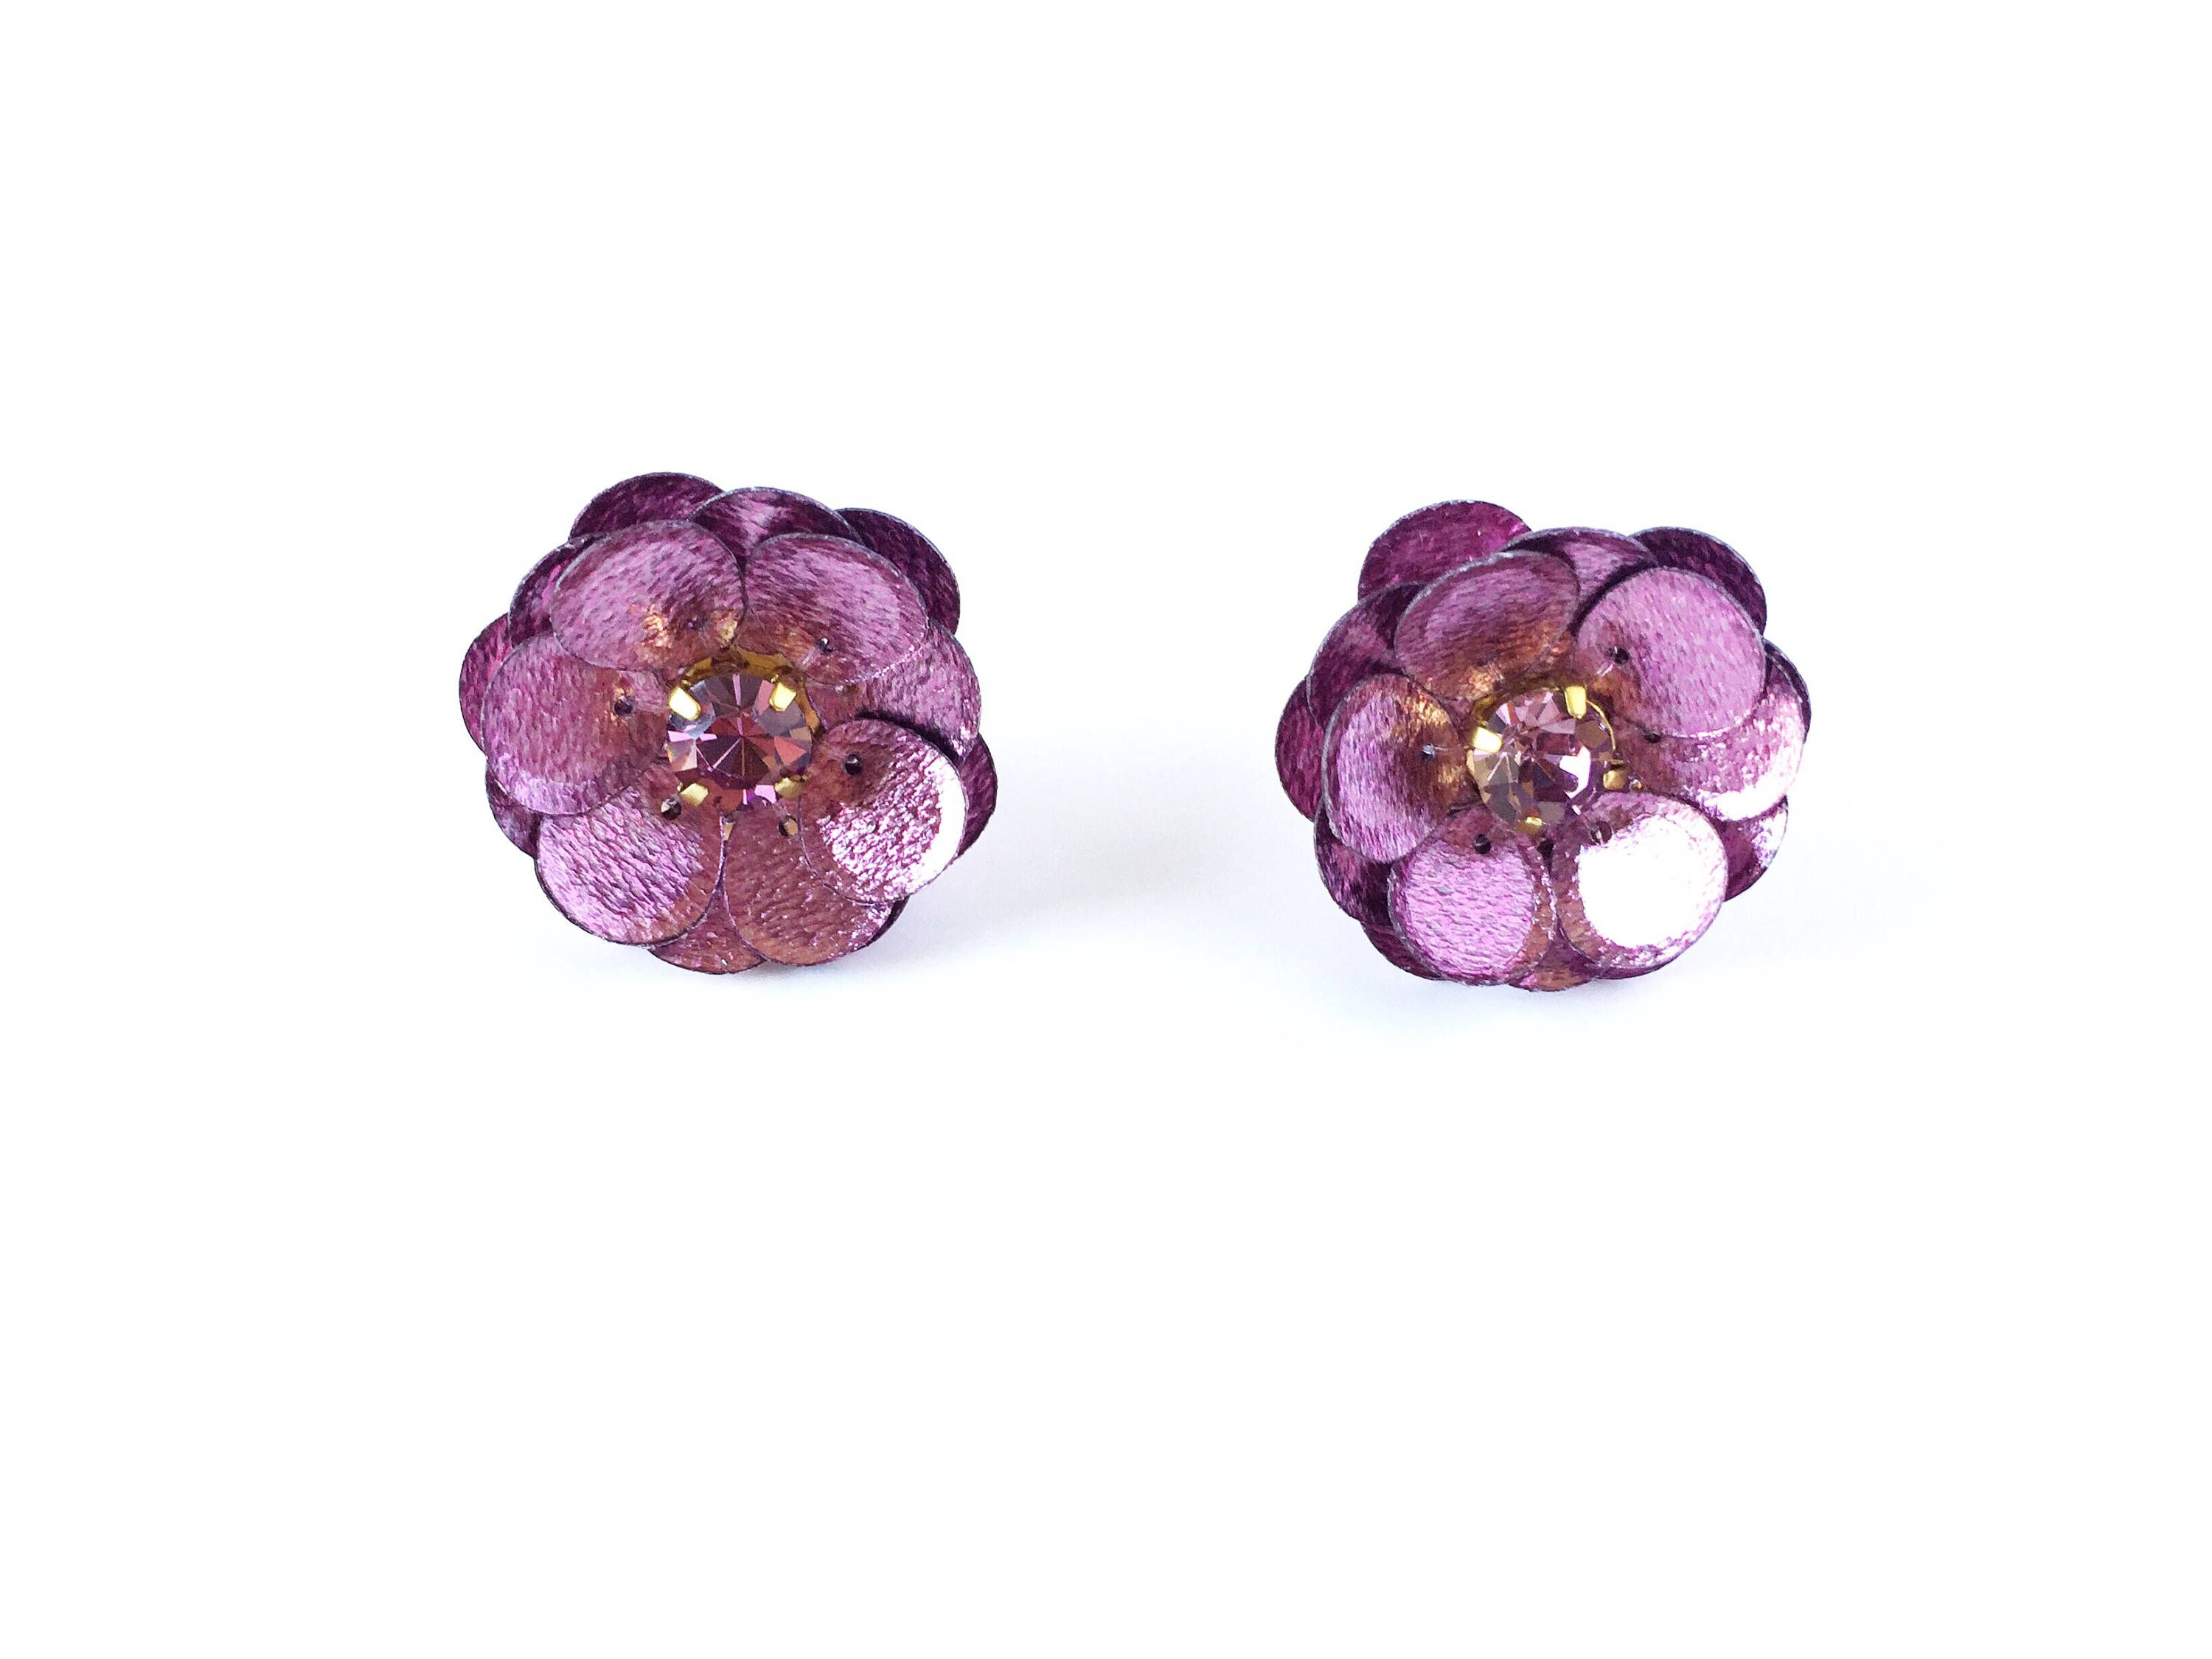 rose barbell set flower earrings products steel purple piercing cartilage surgical tragus earring stud